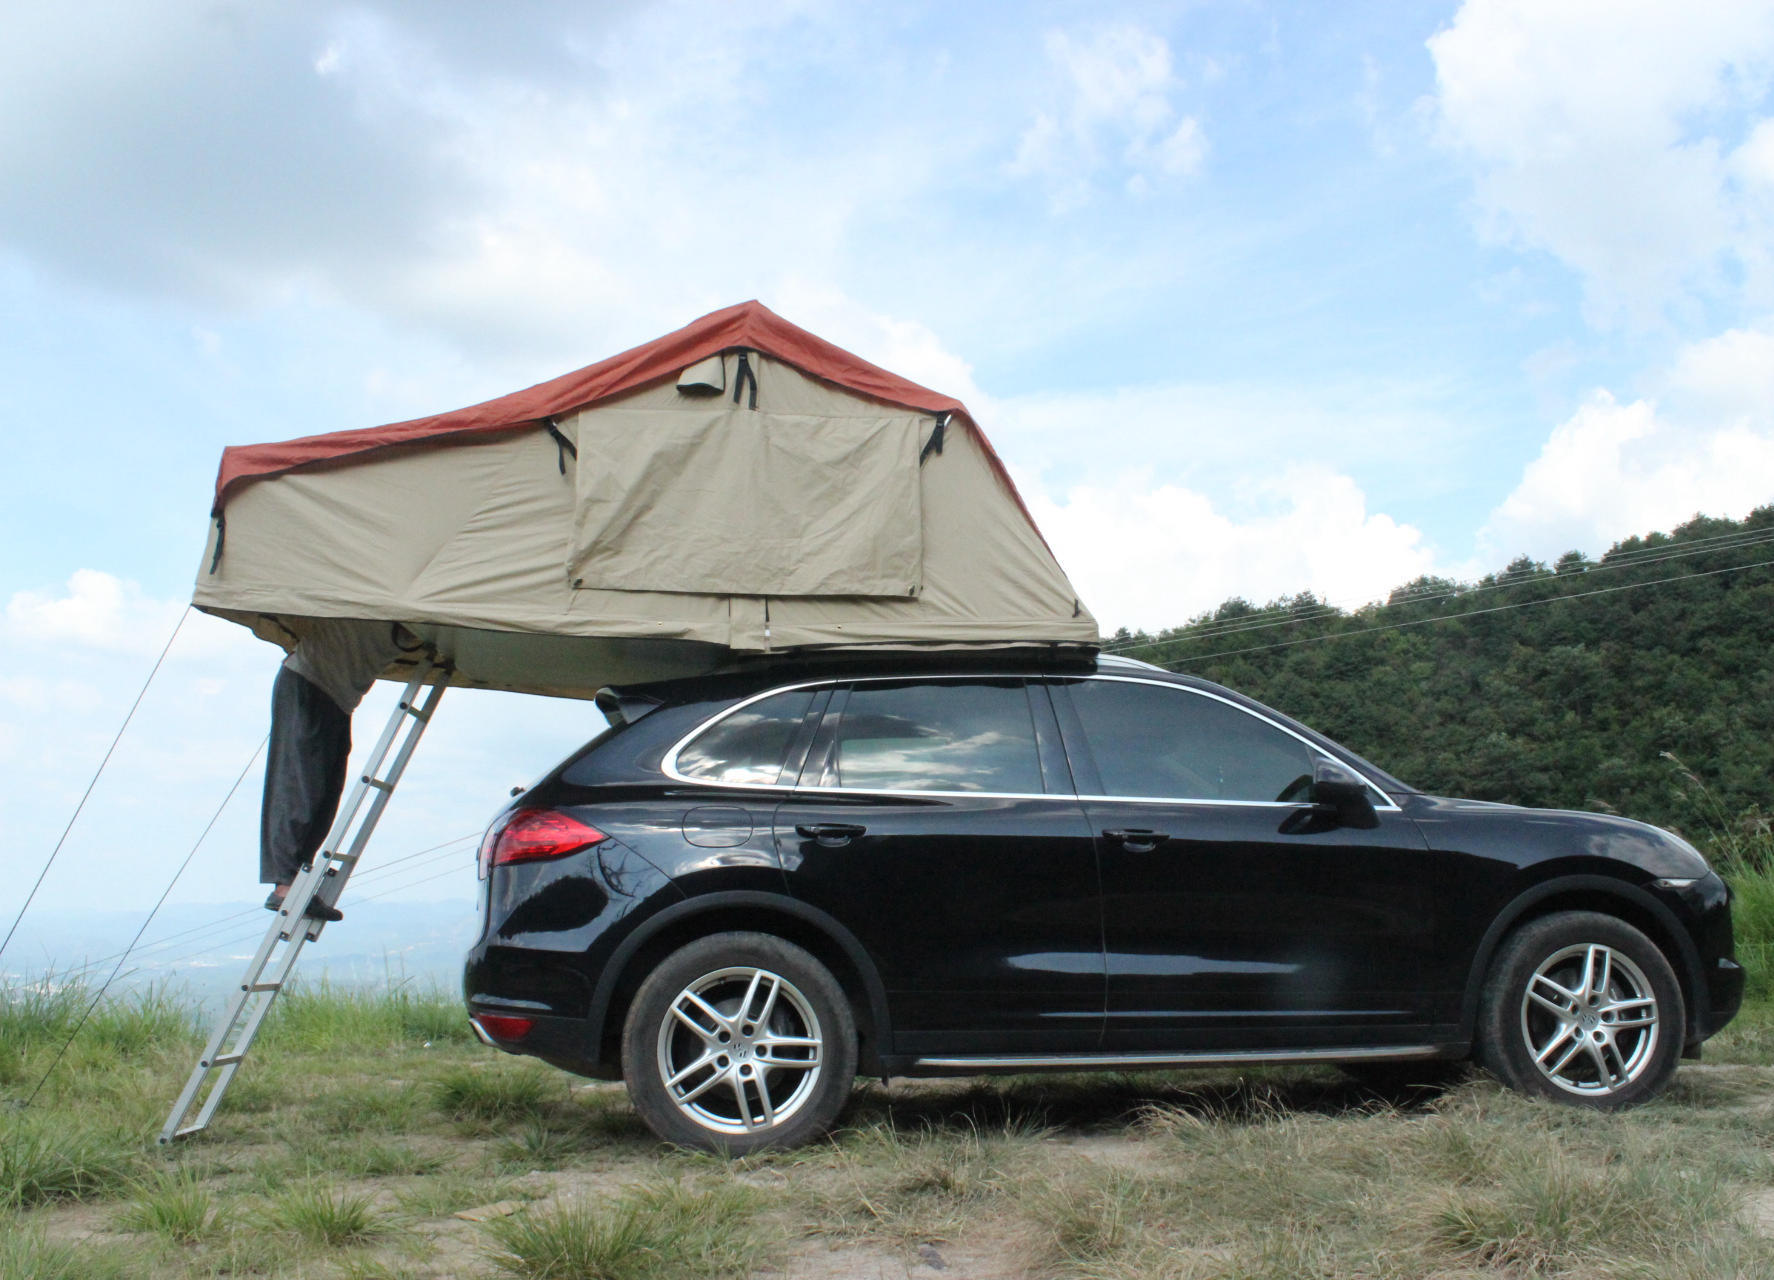 New Camper Trailer Big Size Roof Top Tent for Camping